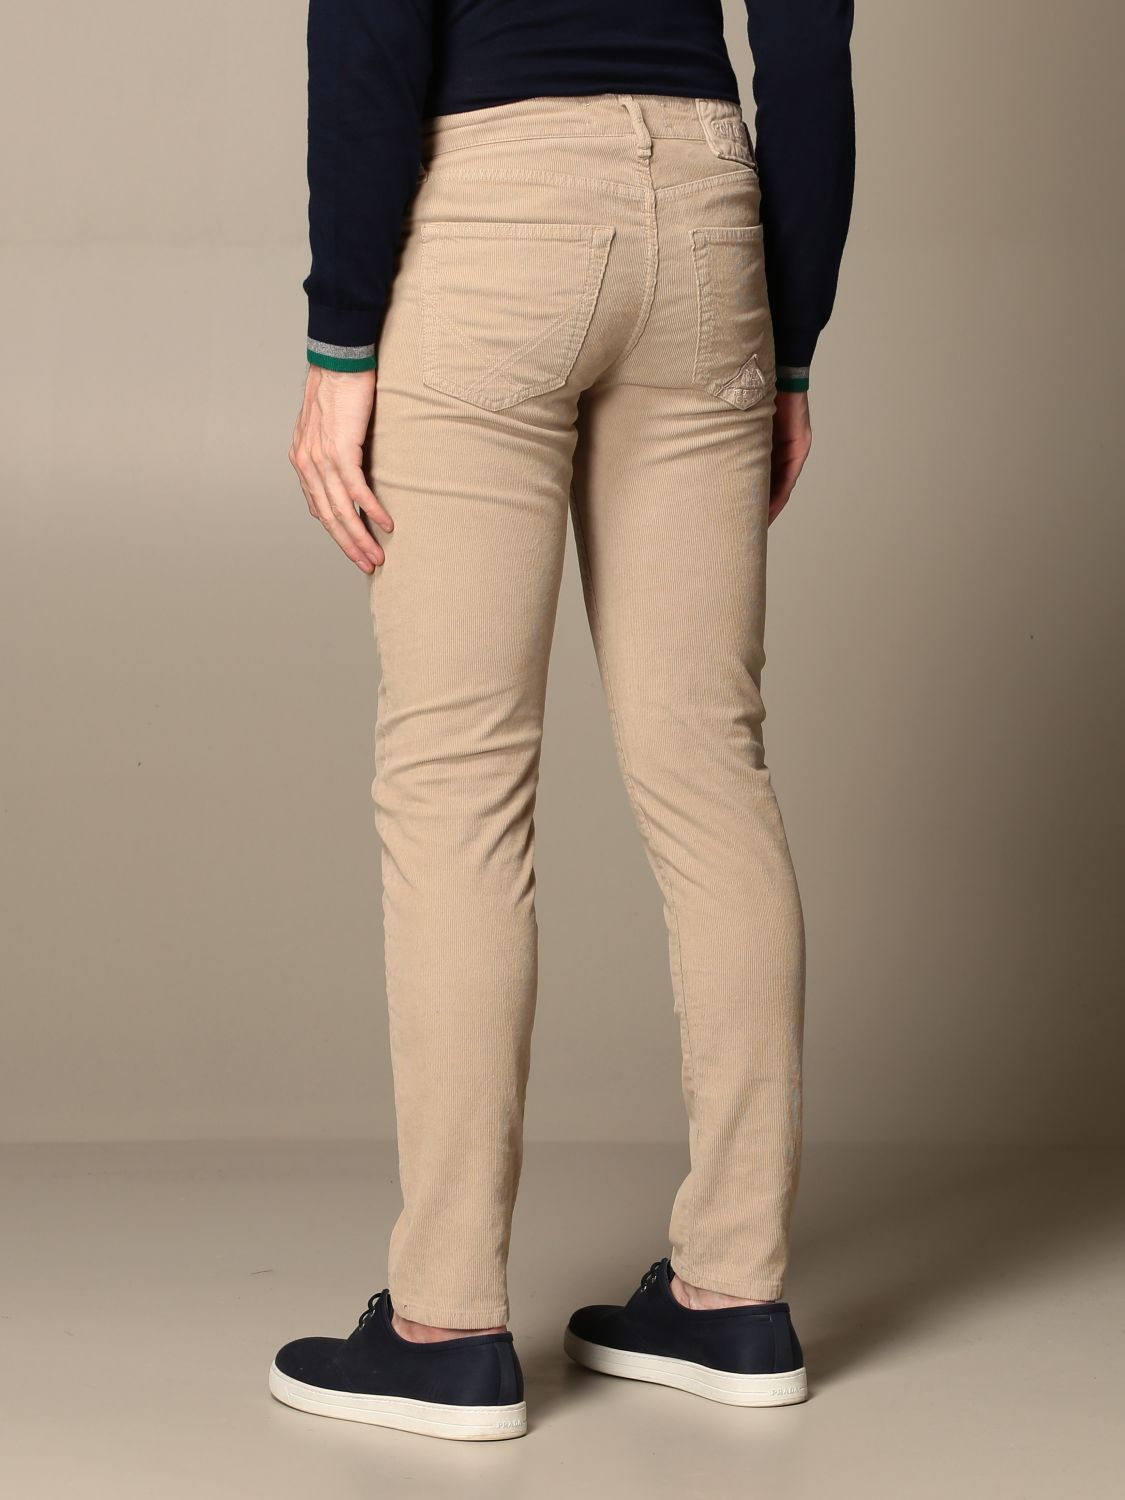 Pants Roy Rogers: Roy Rogers trousers with 5 pockets beige 2